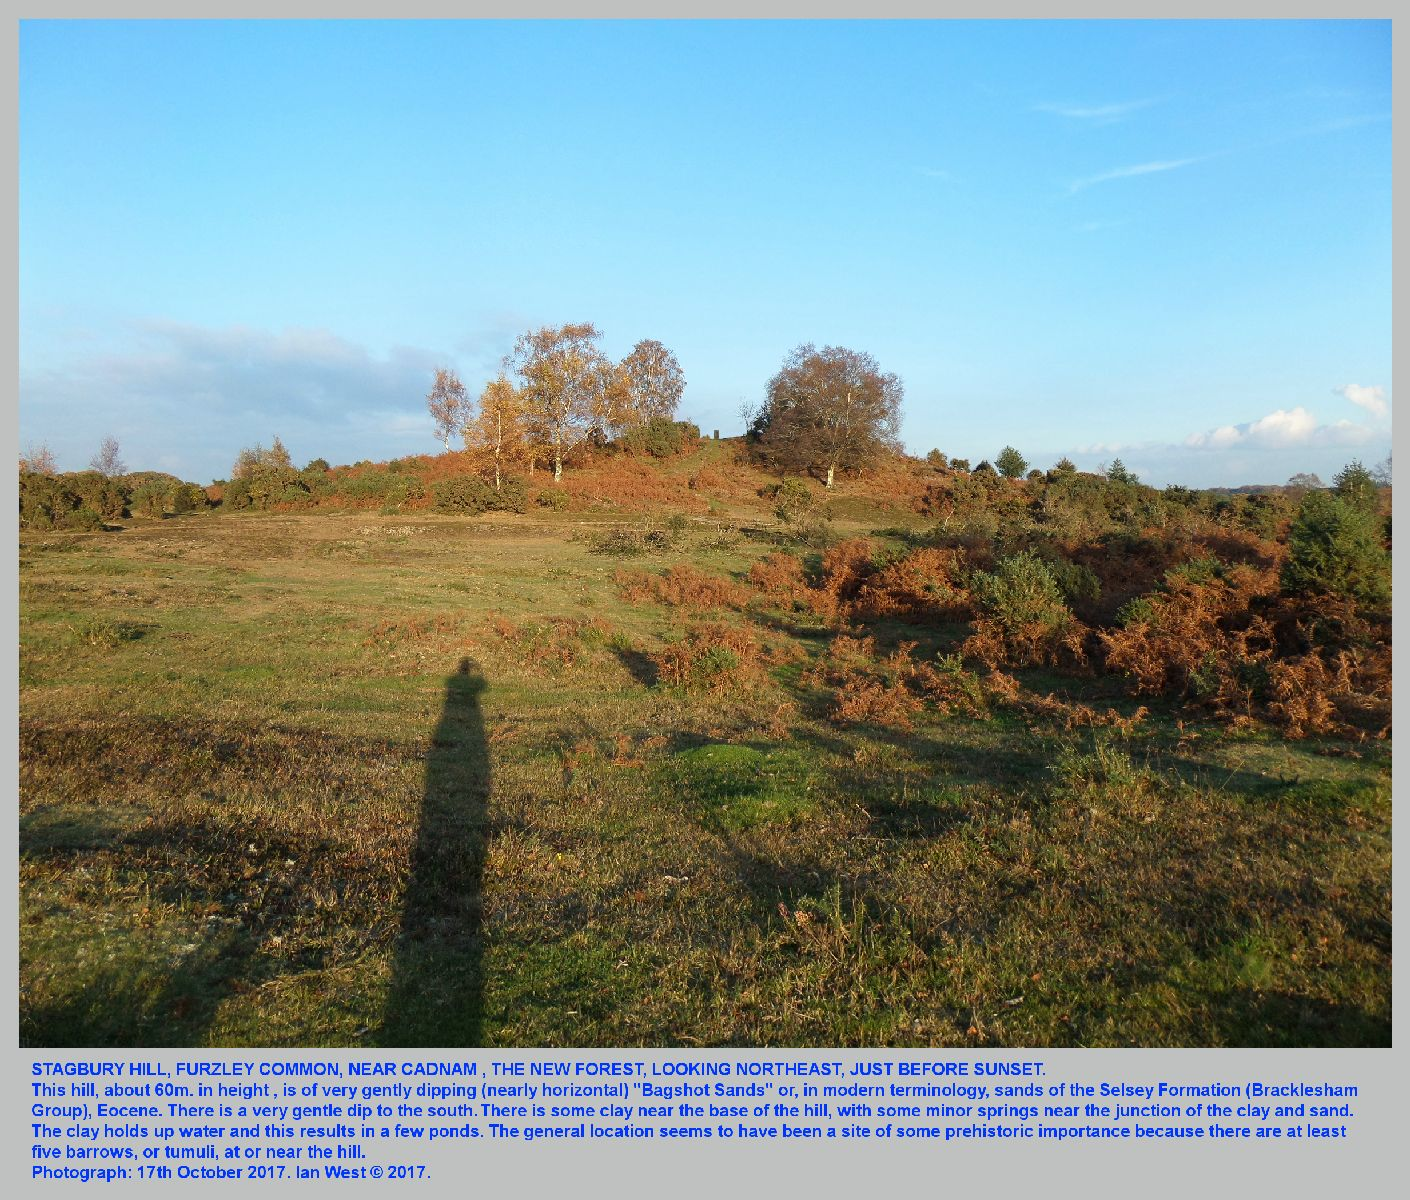 Stagbury Hill, near Cadnam, in the area of the New Forest National Park, the hill consisting mainly of Eocene Sand, probably of the Selsey Formation